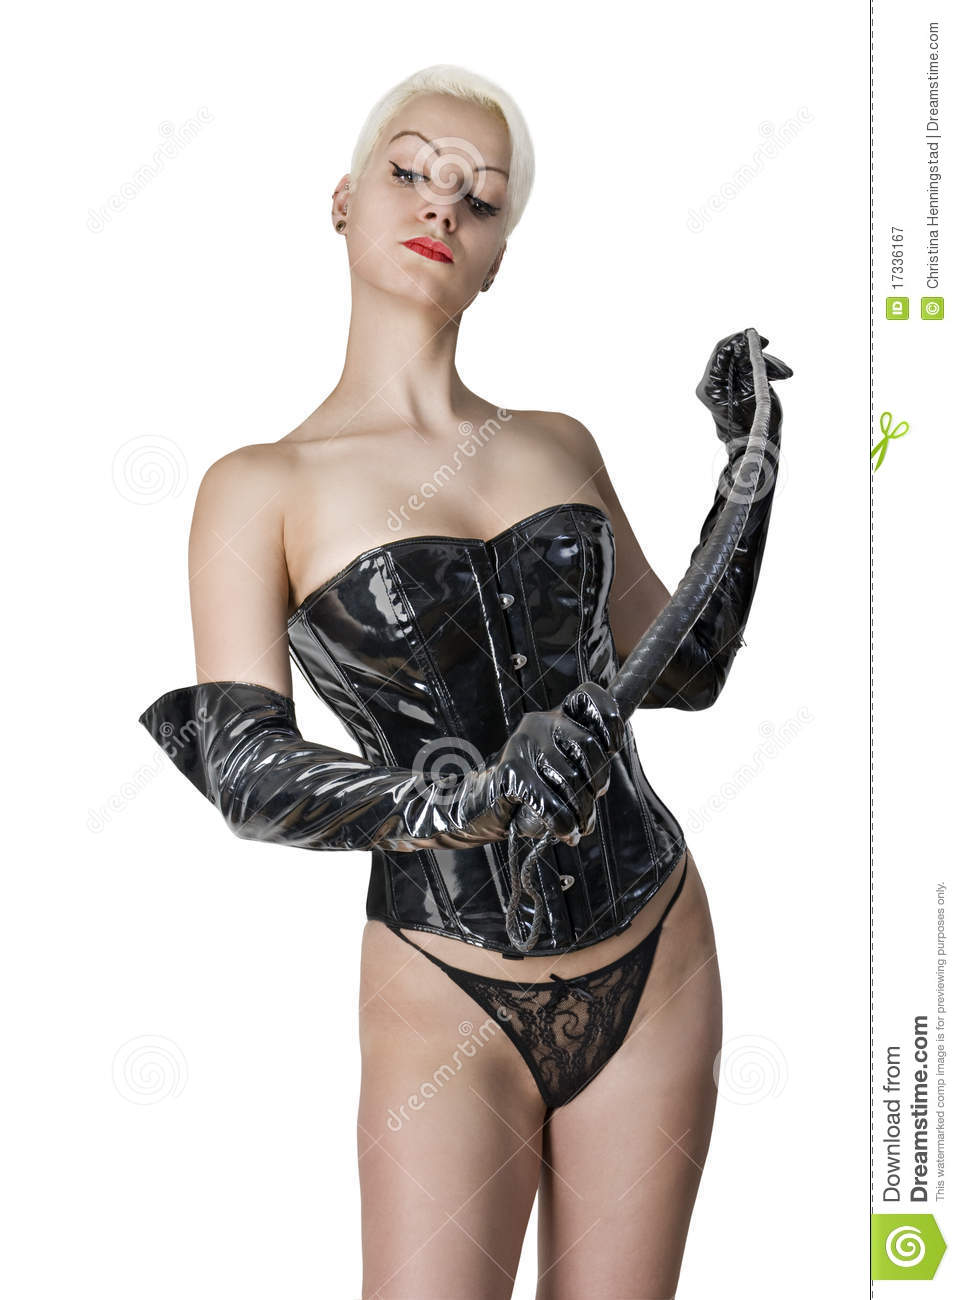 dominatrixx in her free time